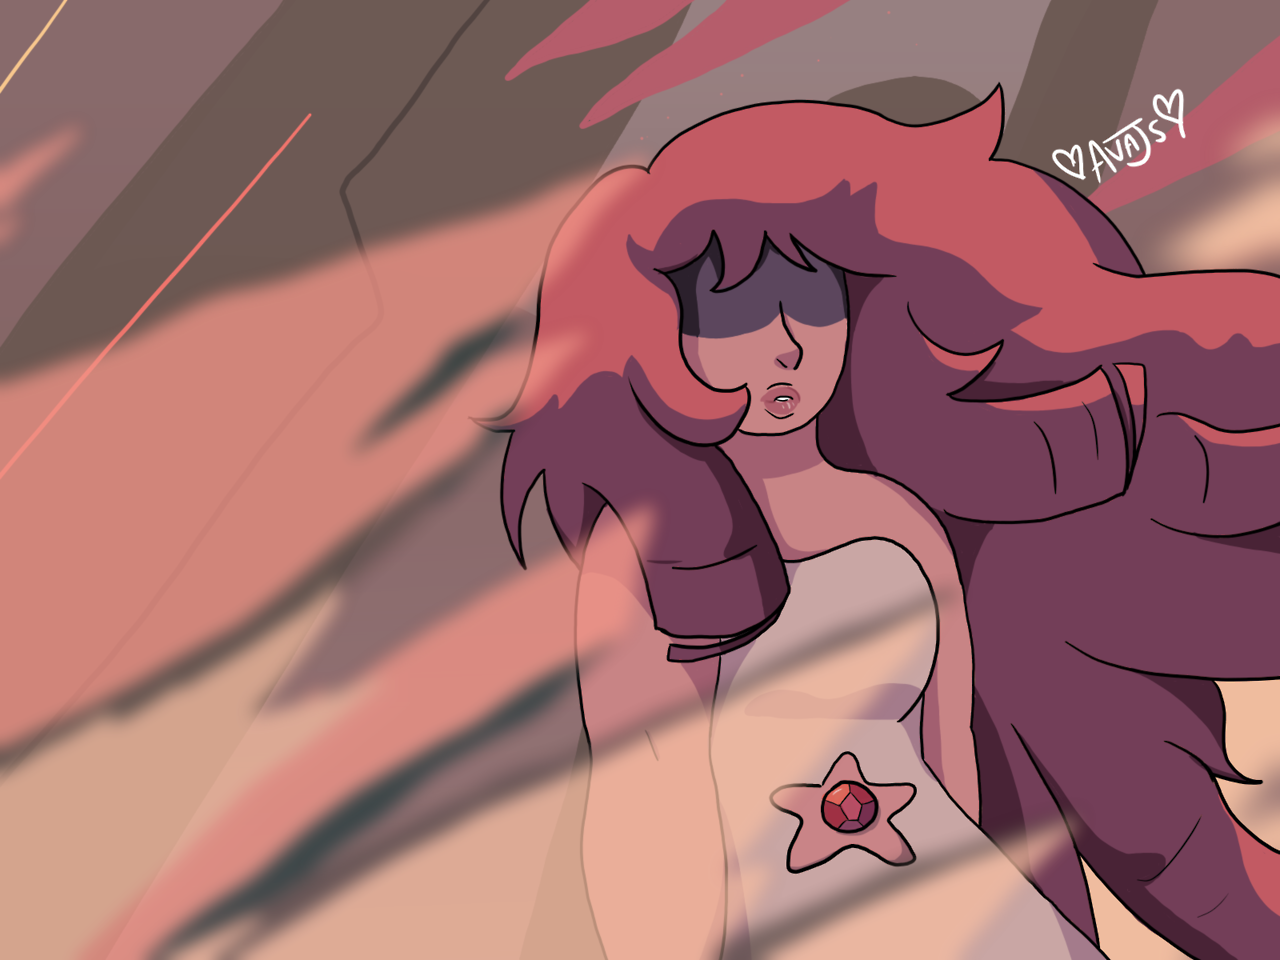 Mother  ~  Rose Quartz is such a complex character… and this episode was legit terrifying. It made me cry. Steven has developed so much since season 1…